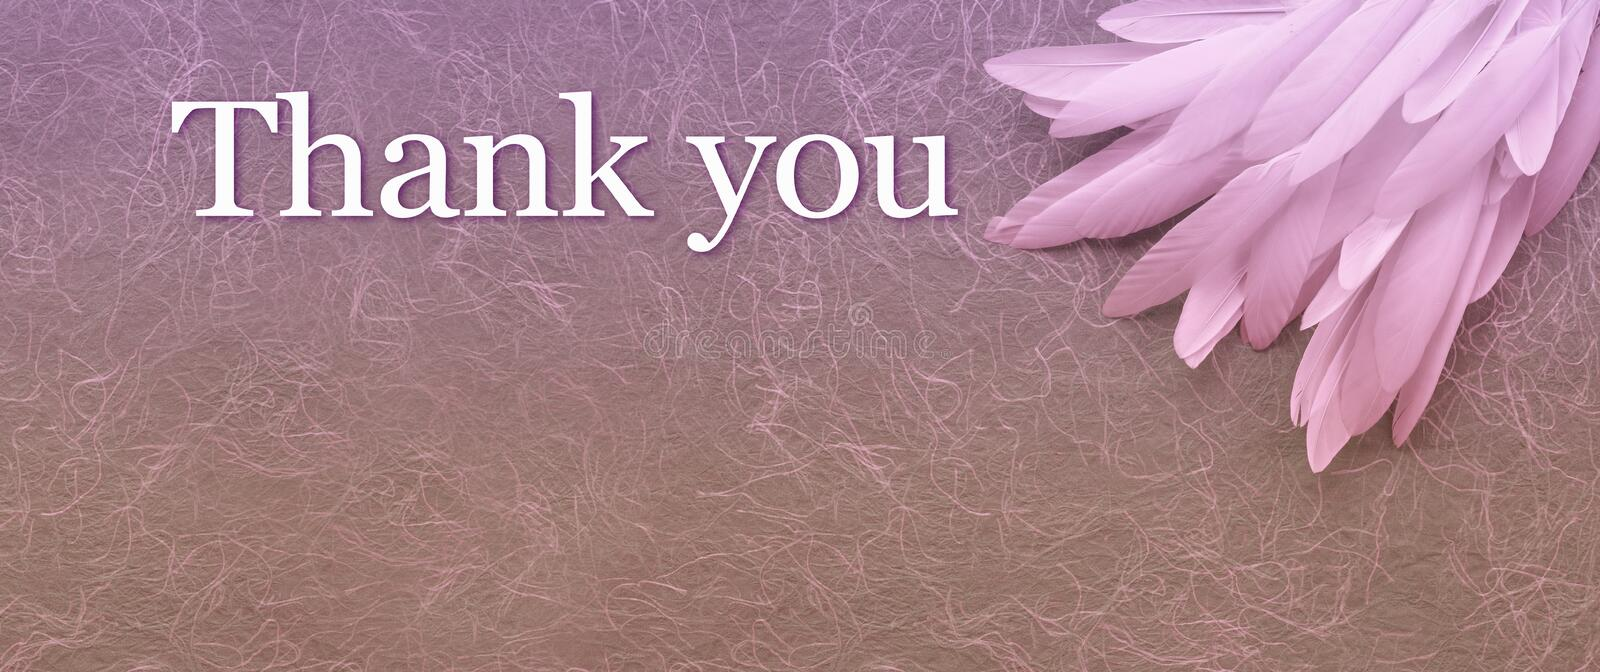 Angelic Thank You Pink Feather header Background. Random pile of thin white feathers placed in the top right corner, beside the words THANK YOU against a rustic stock image